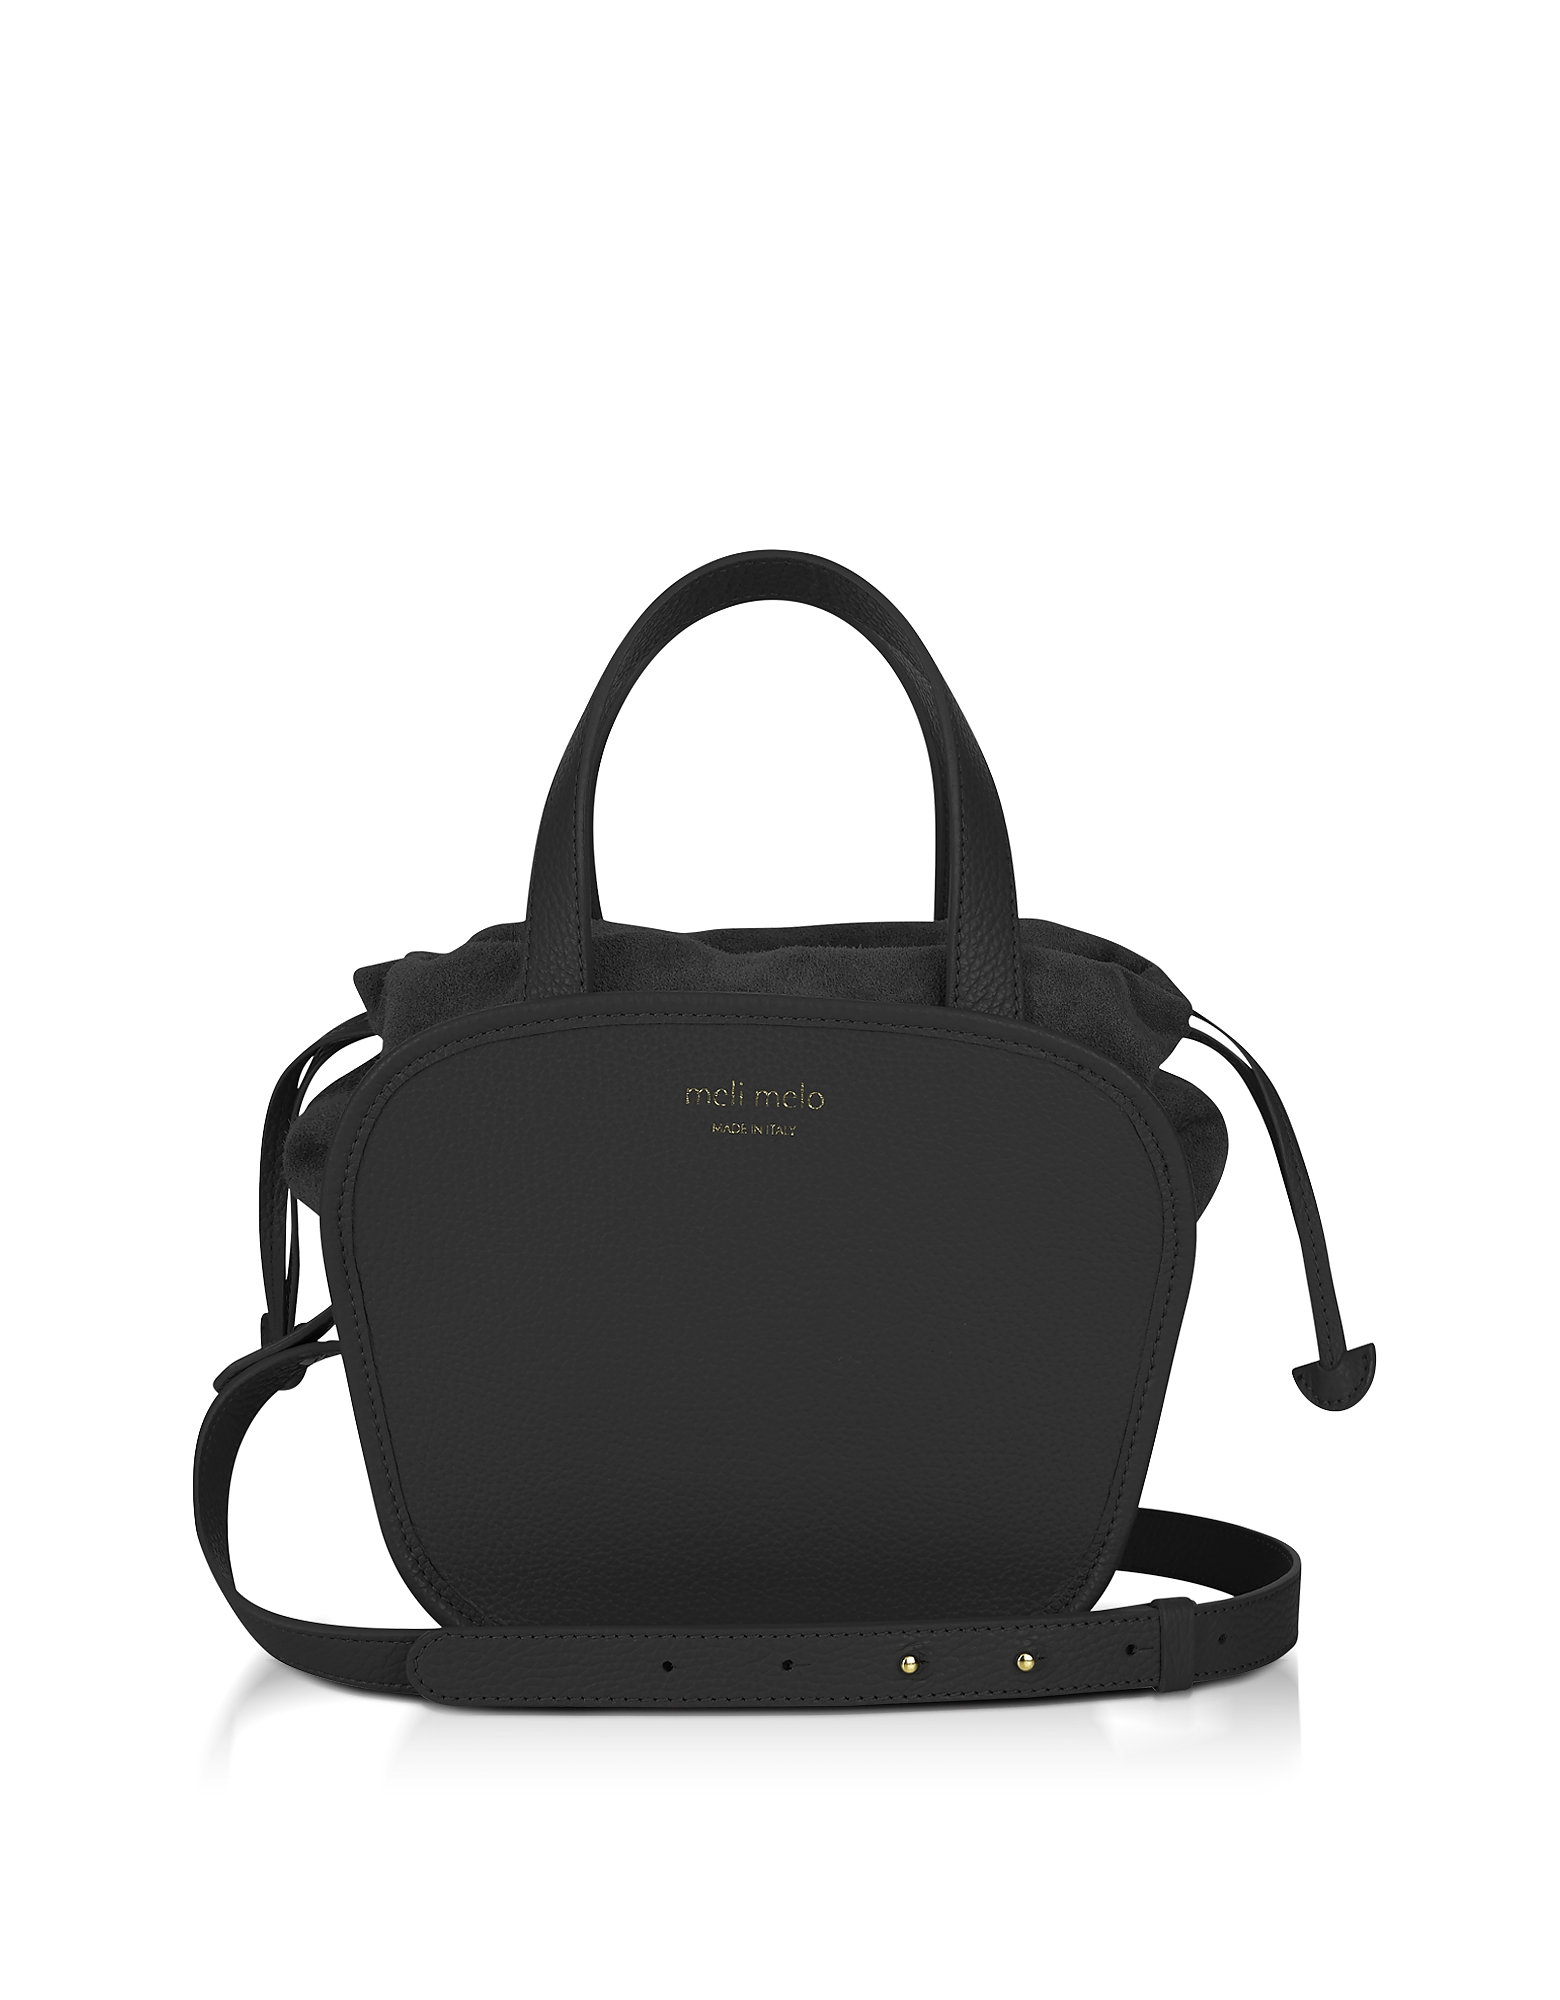 Meli Melo Handbags, Rosetta Black Leather Crossbody Bag